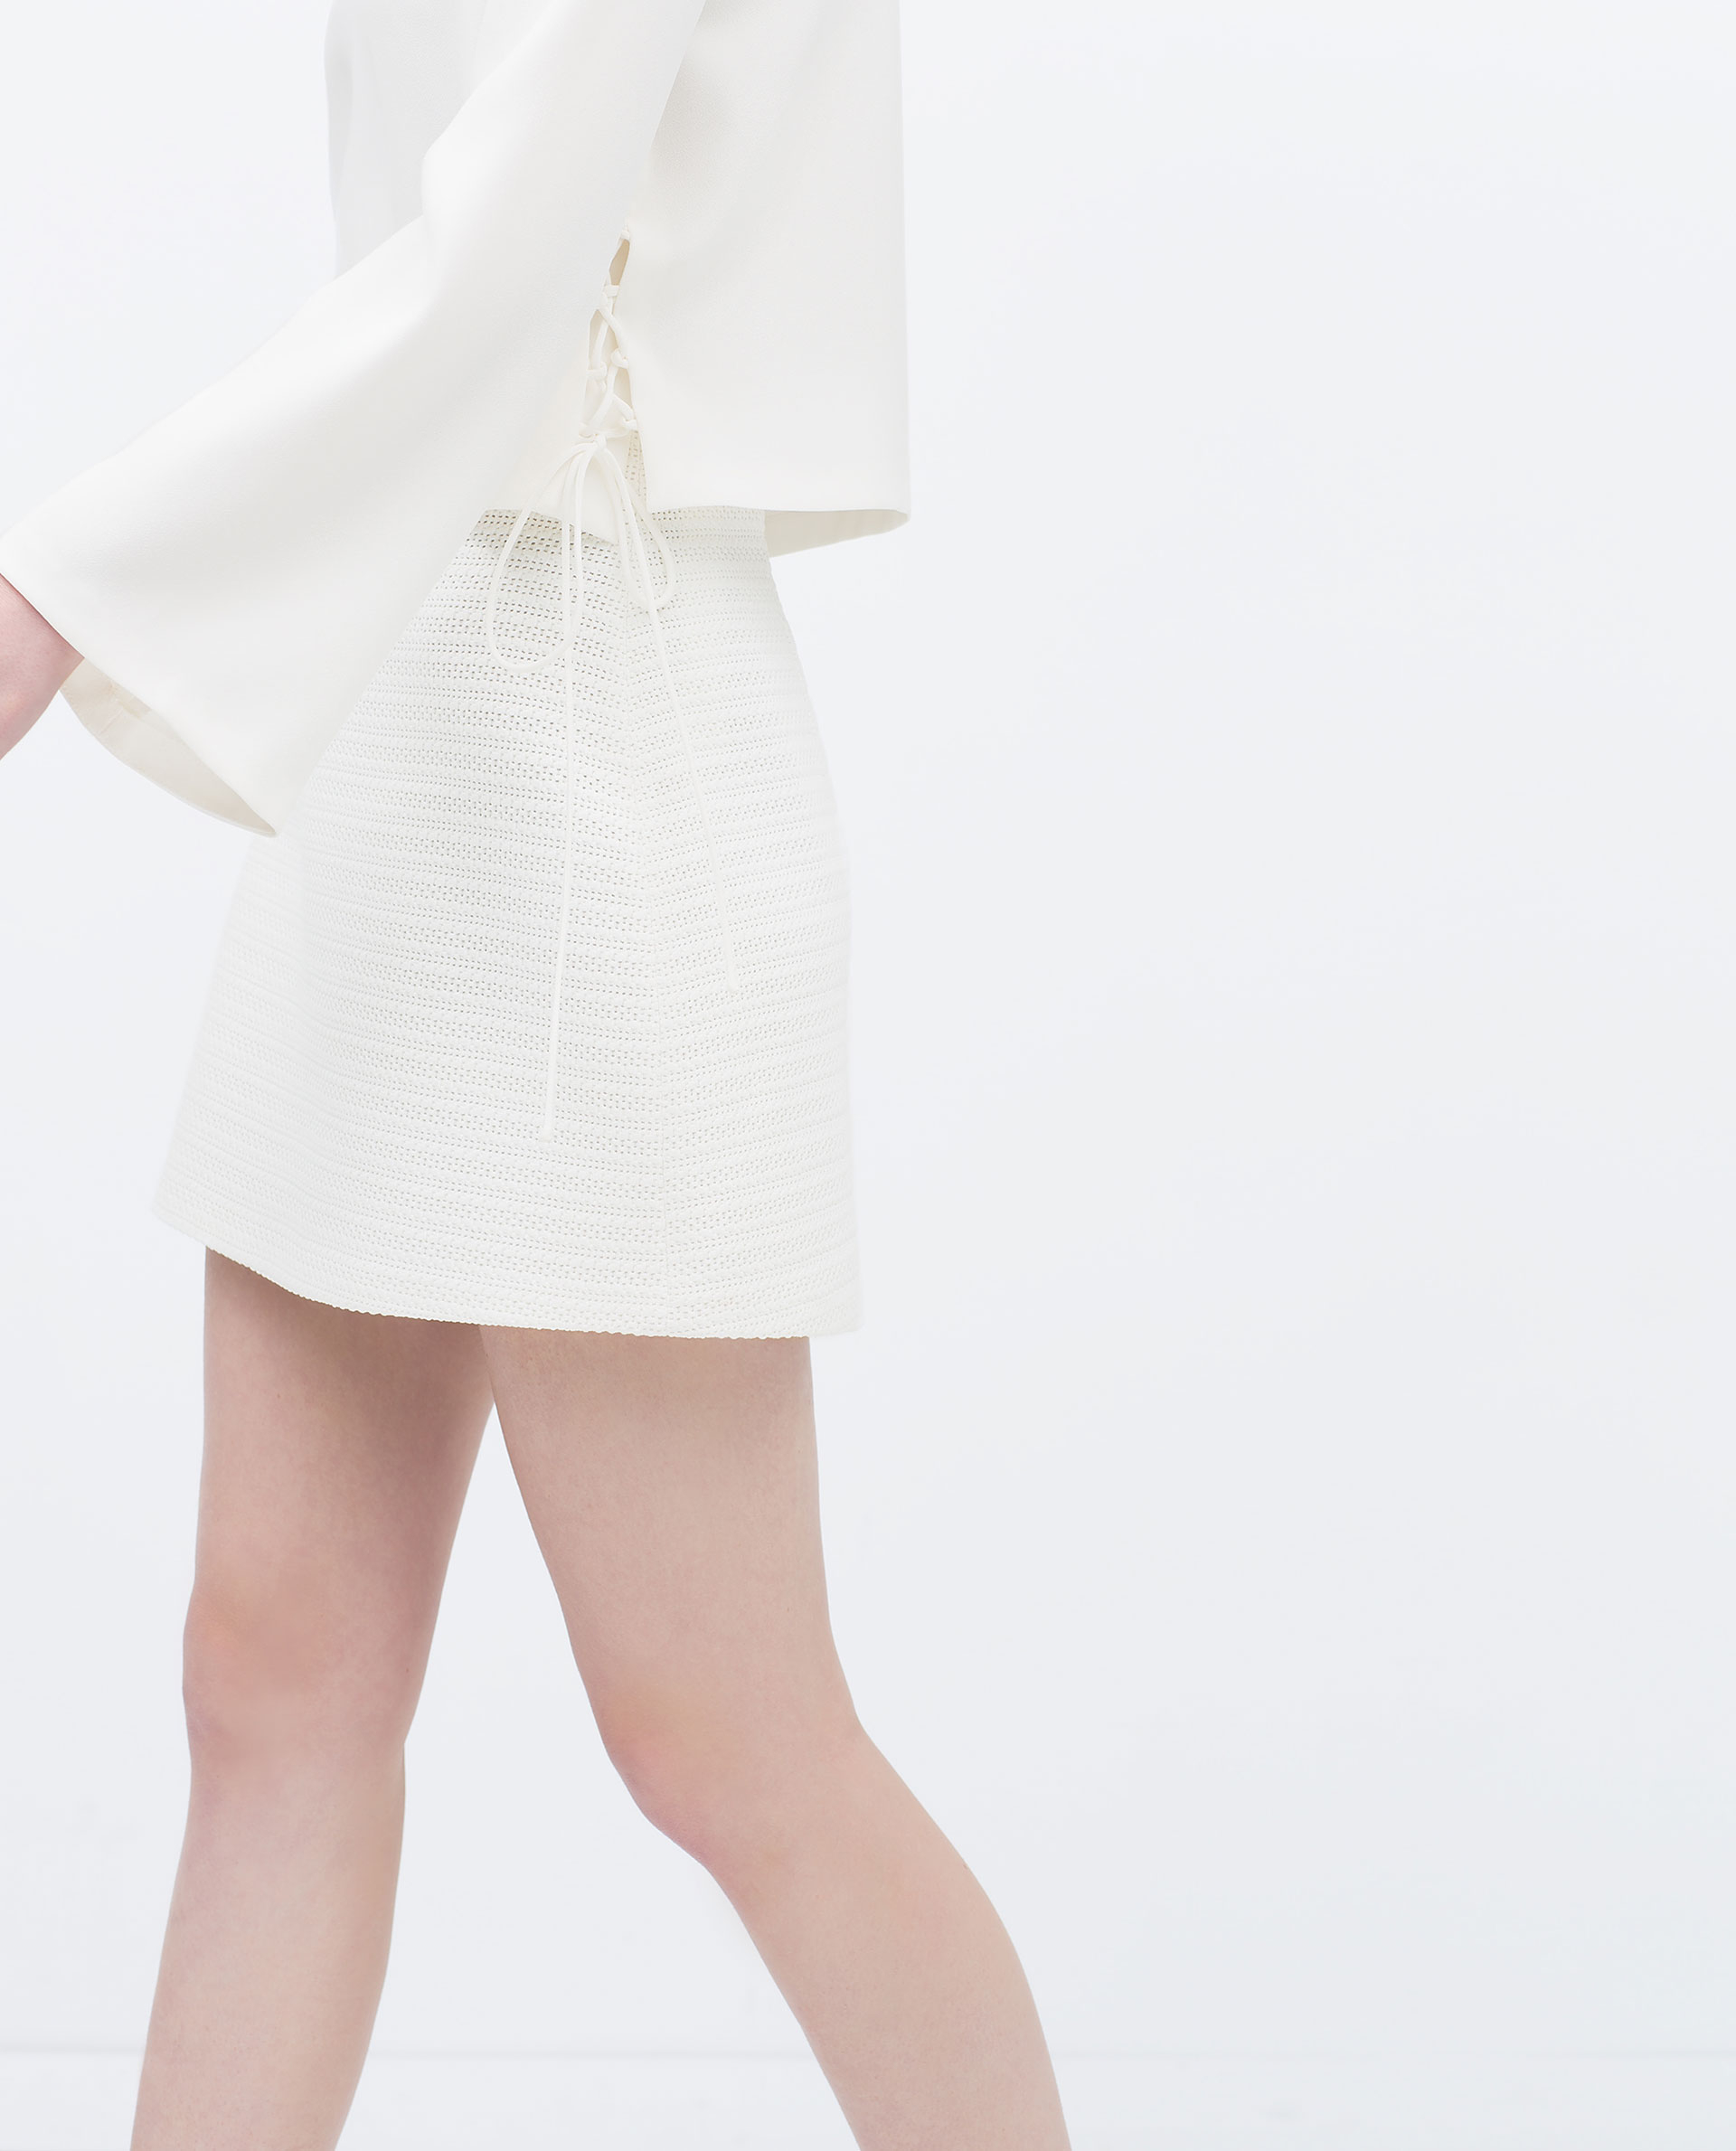 Zara A-Line Mini Skirt A-Line Mini Skirt in White | Lyst